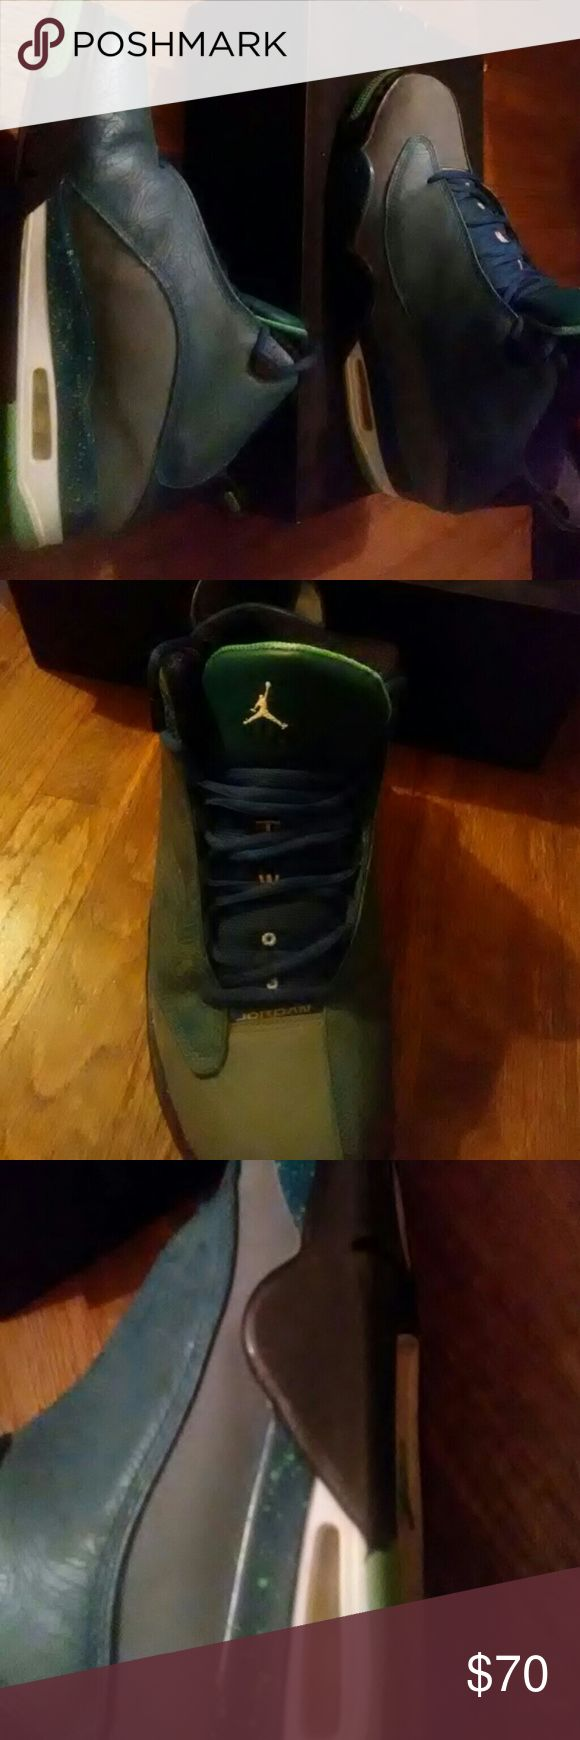 Air jordan dub zero Limited edition lazer green and blue 30th anniversary of jordan retros. Has every pair of retros lazerd on the side and every feature of retros.good condition lightly wore. Air Jordan Shoes Athletic Shoes